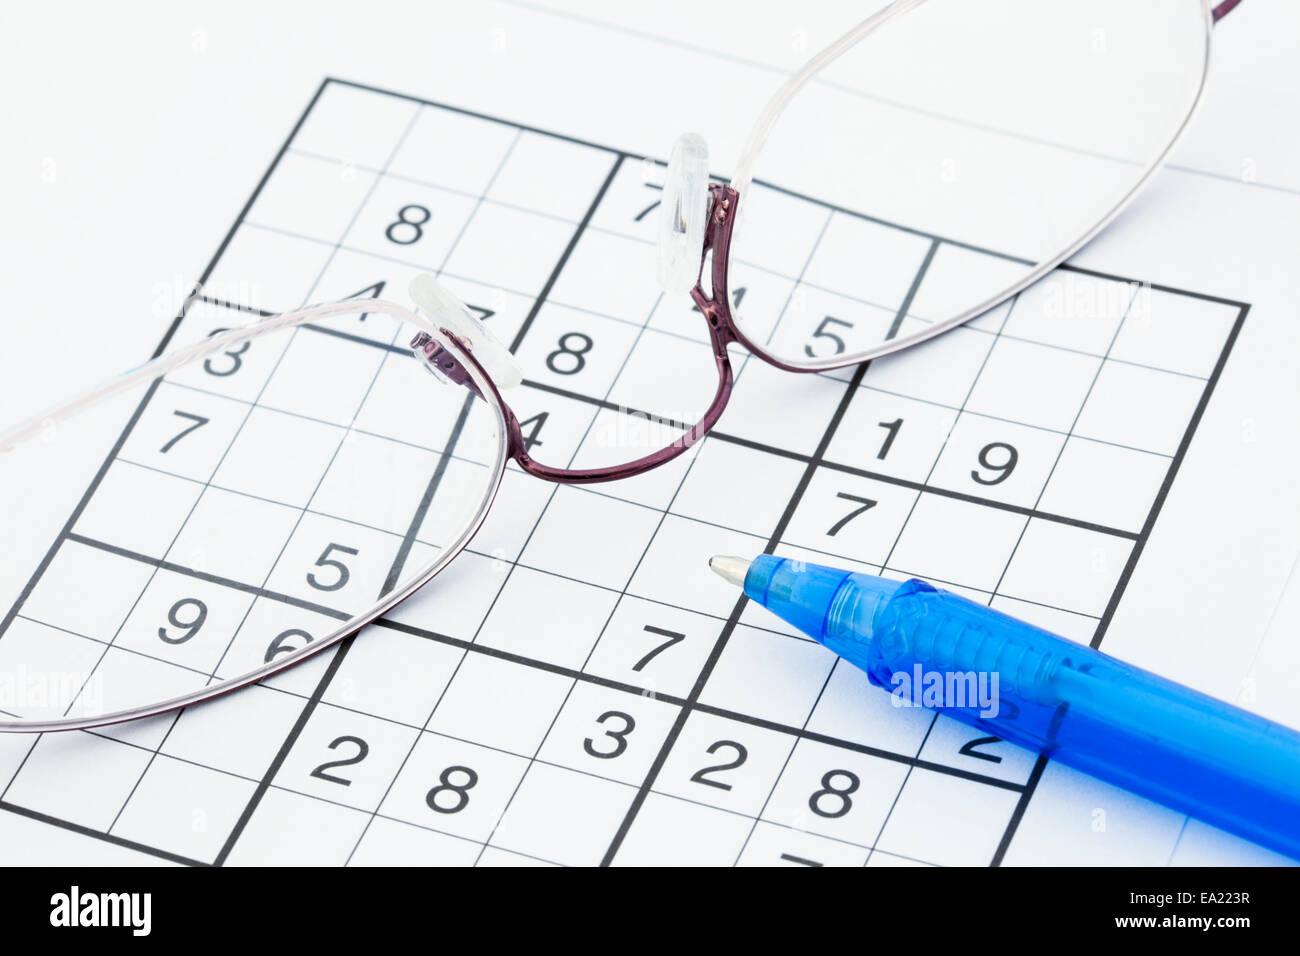 Suduko numbers puzzle spectacles and pen close-up to illustrate a mental health healthy mind concept. - Stock Image